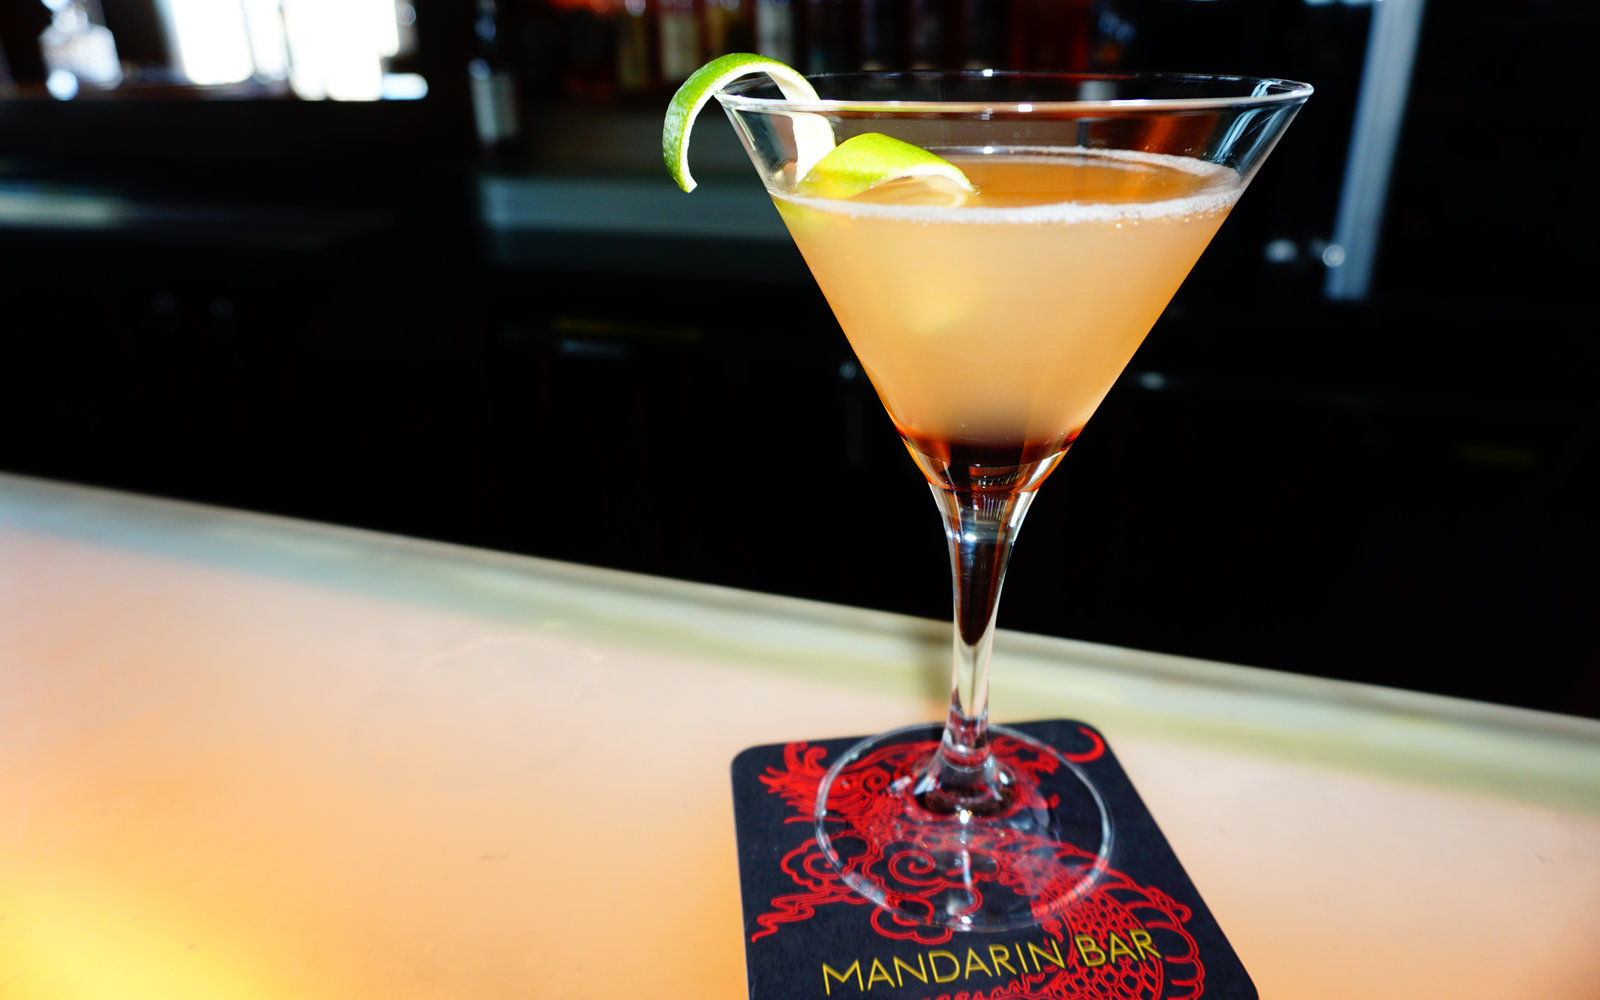 Pineapple Ginger Daiquiri at Mandarin Oriental, Las Vegas